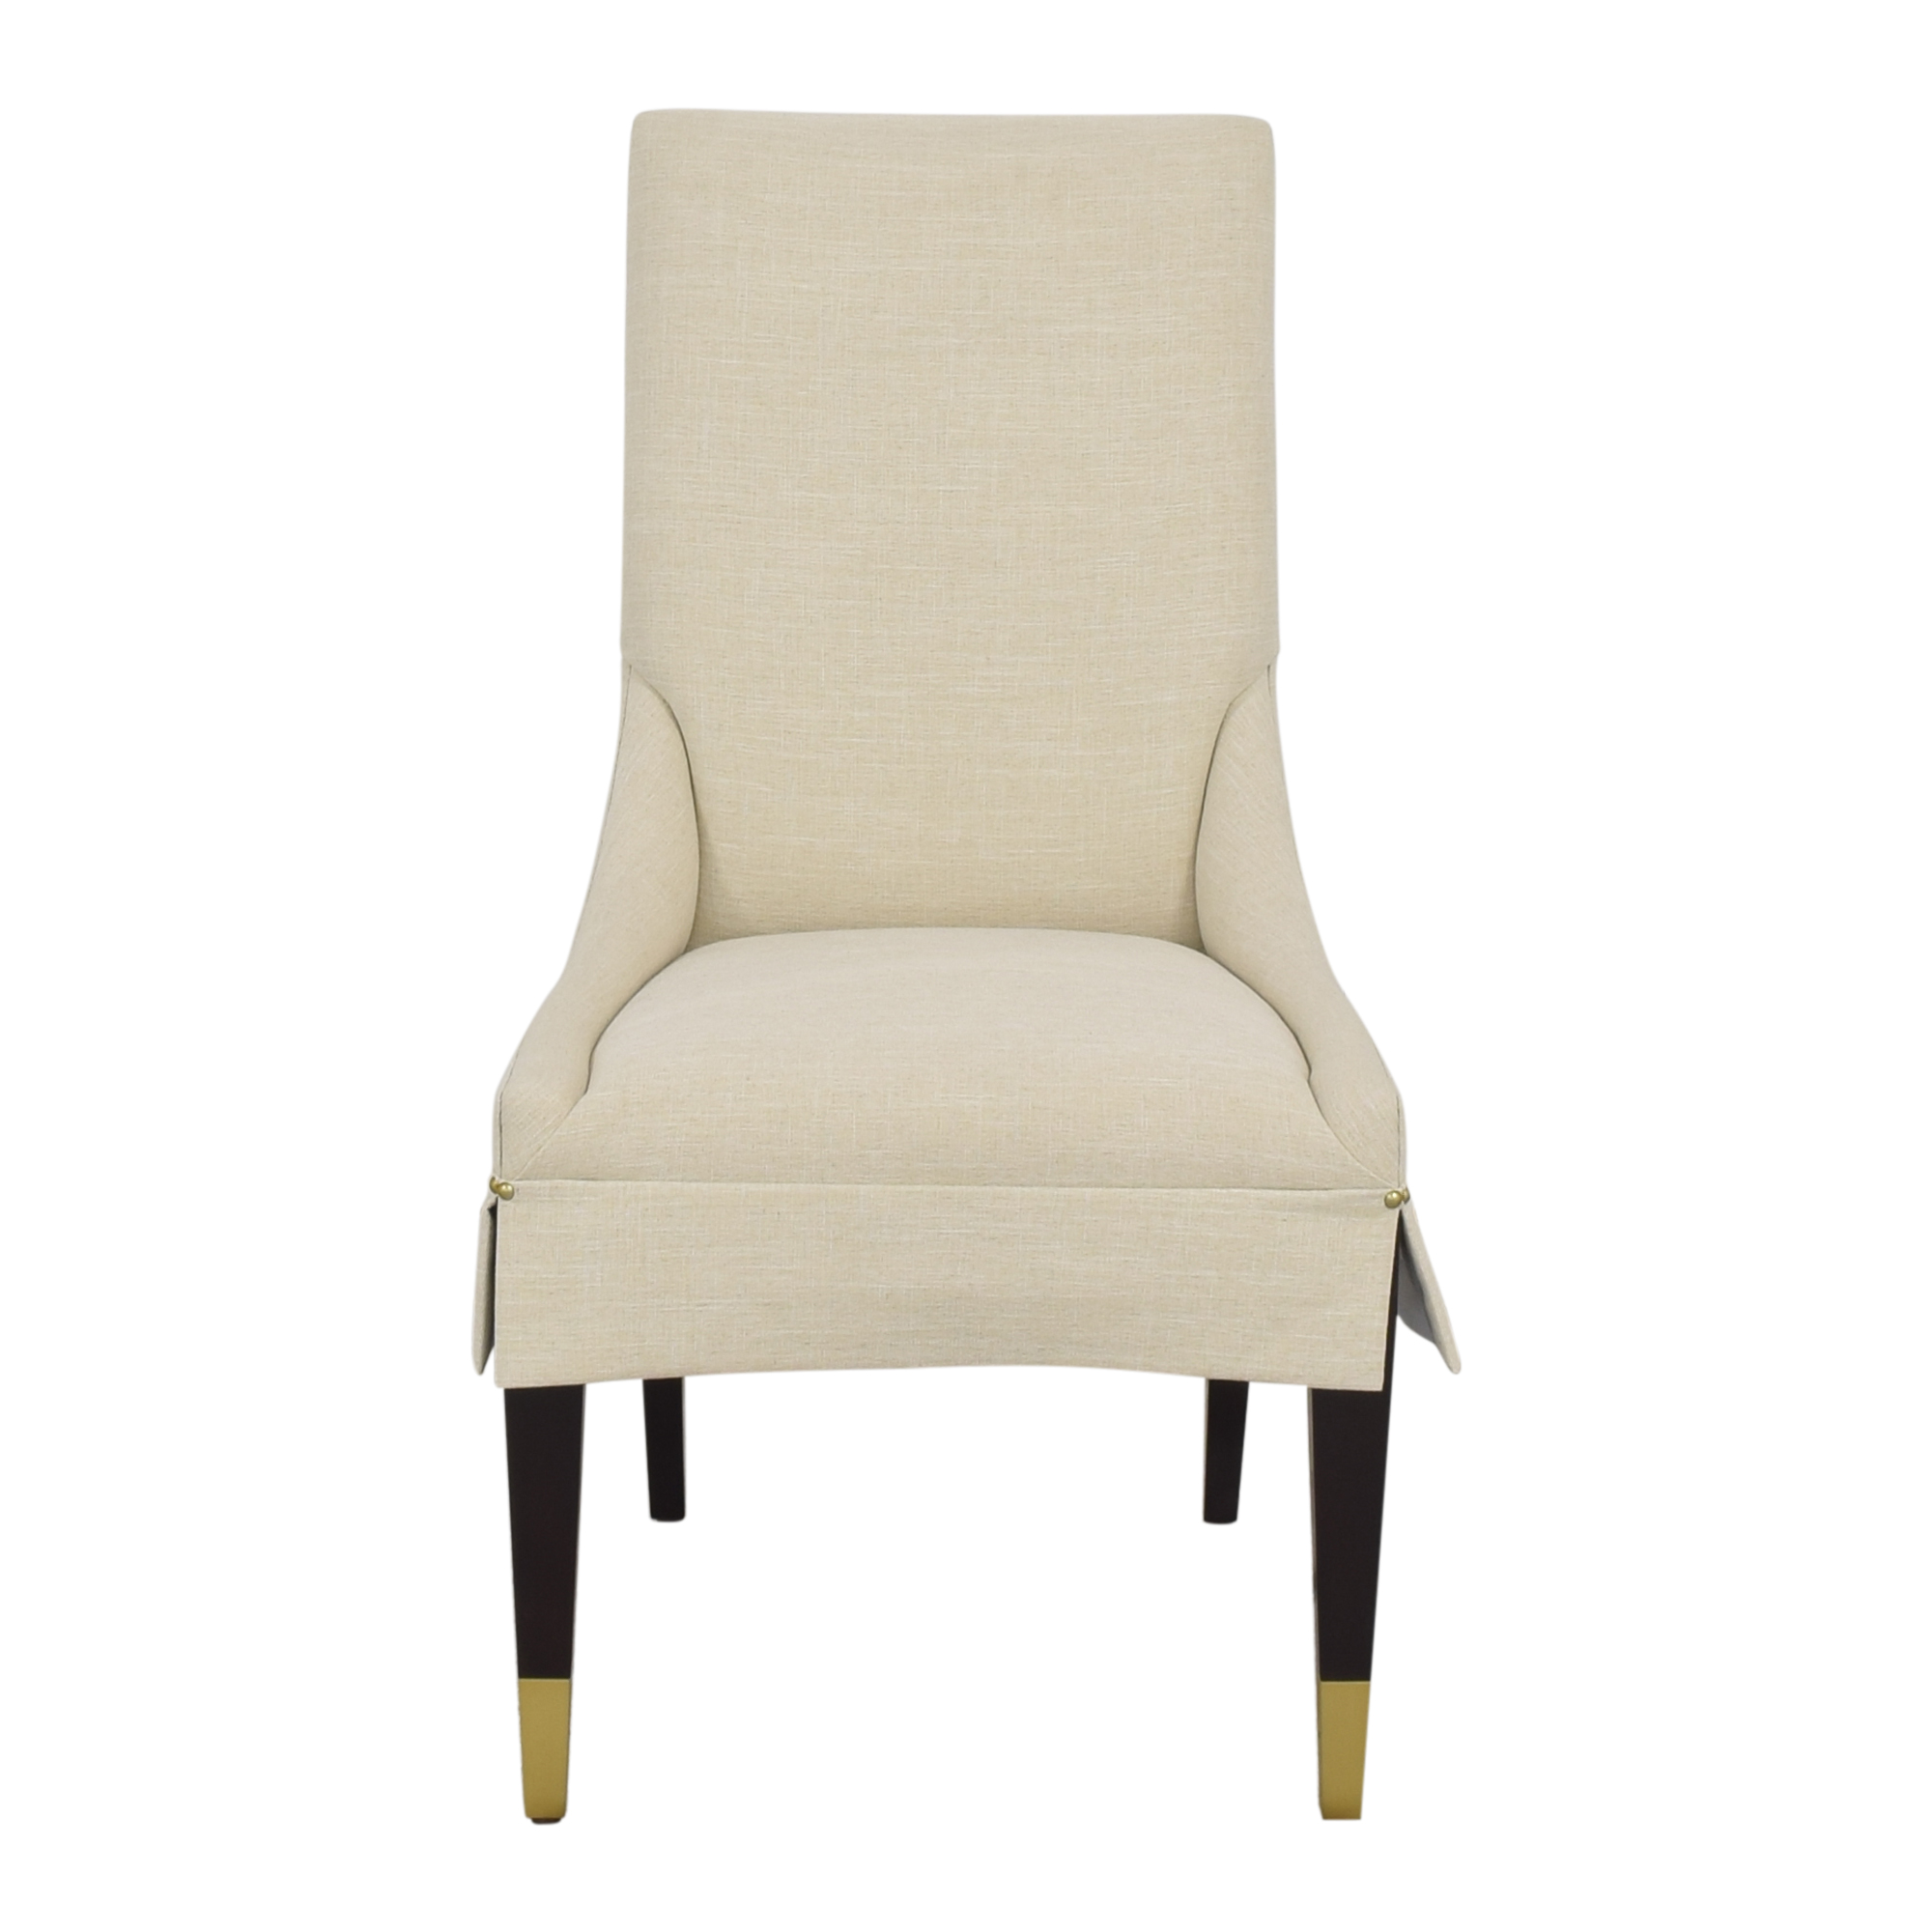 Lexington Furniture Carlyle Upholstered Parsons Chair / Chairs